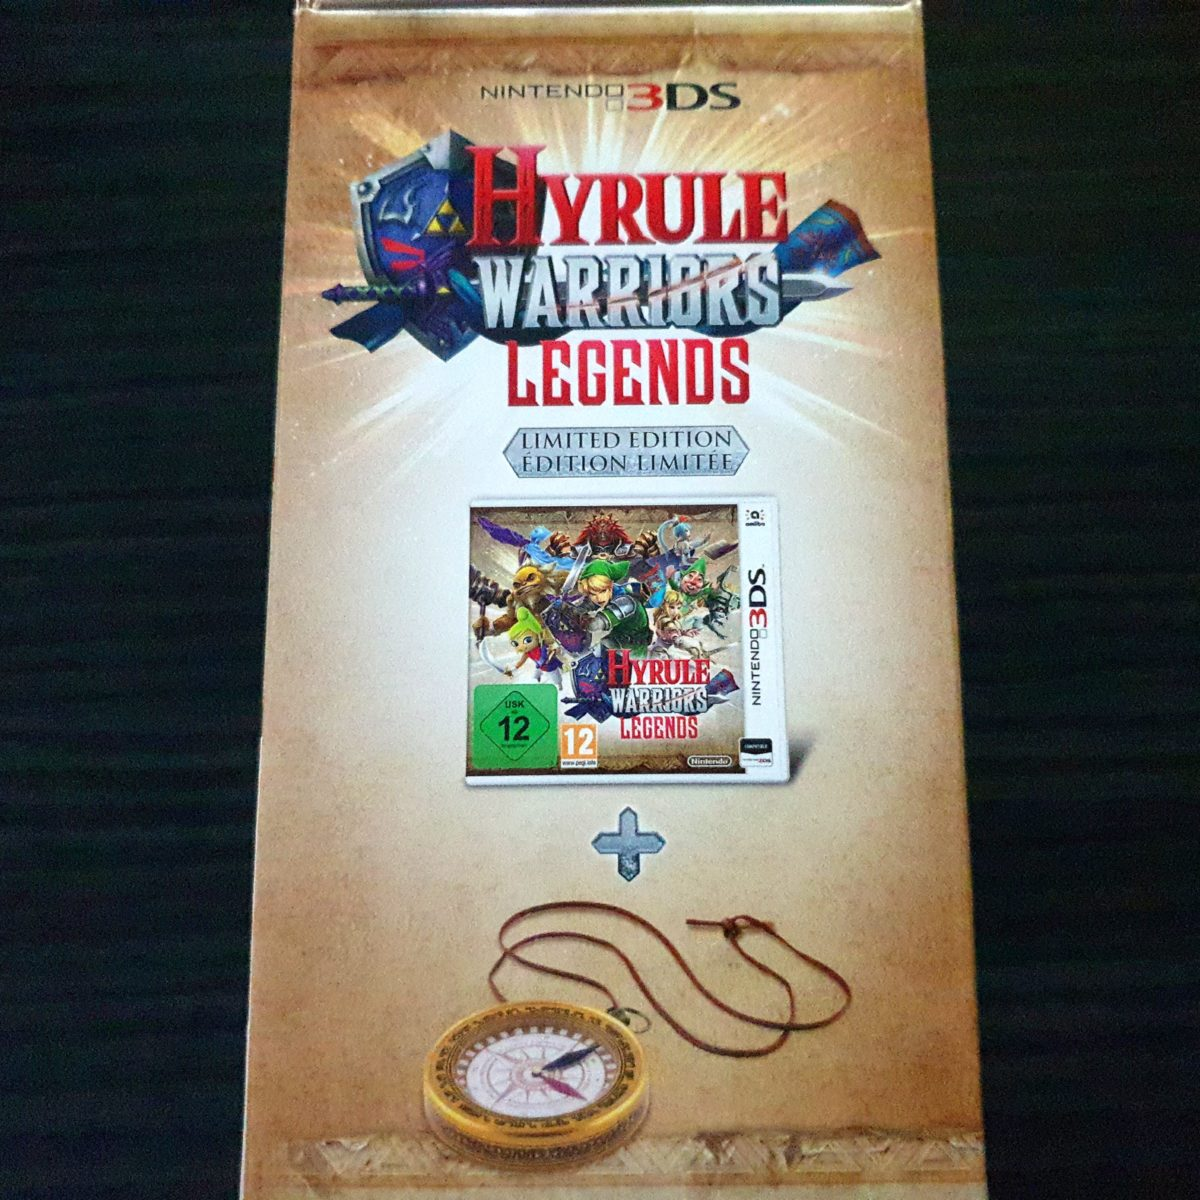 Hyrule Warriors Legends Limited Edition Europe